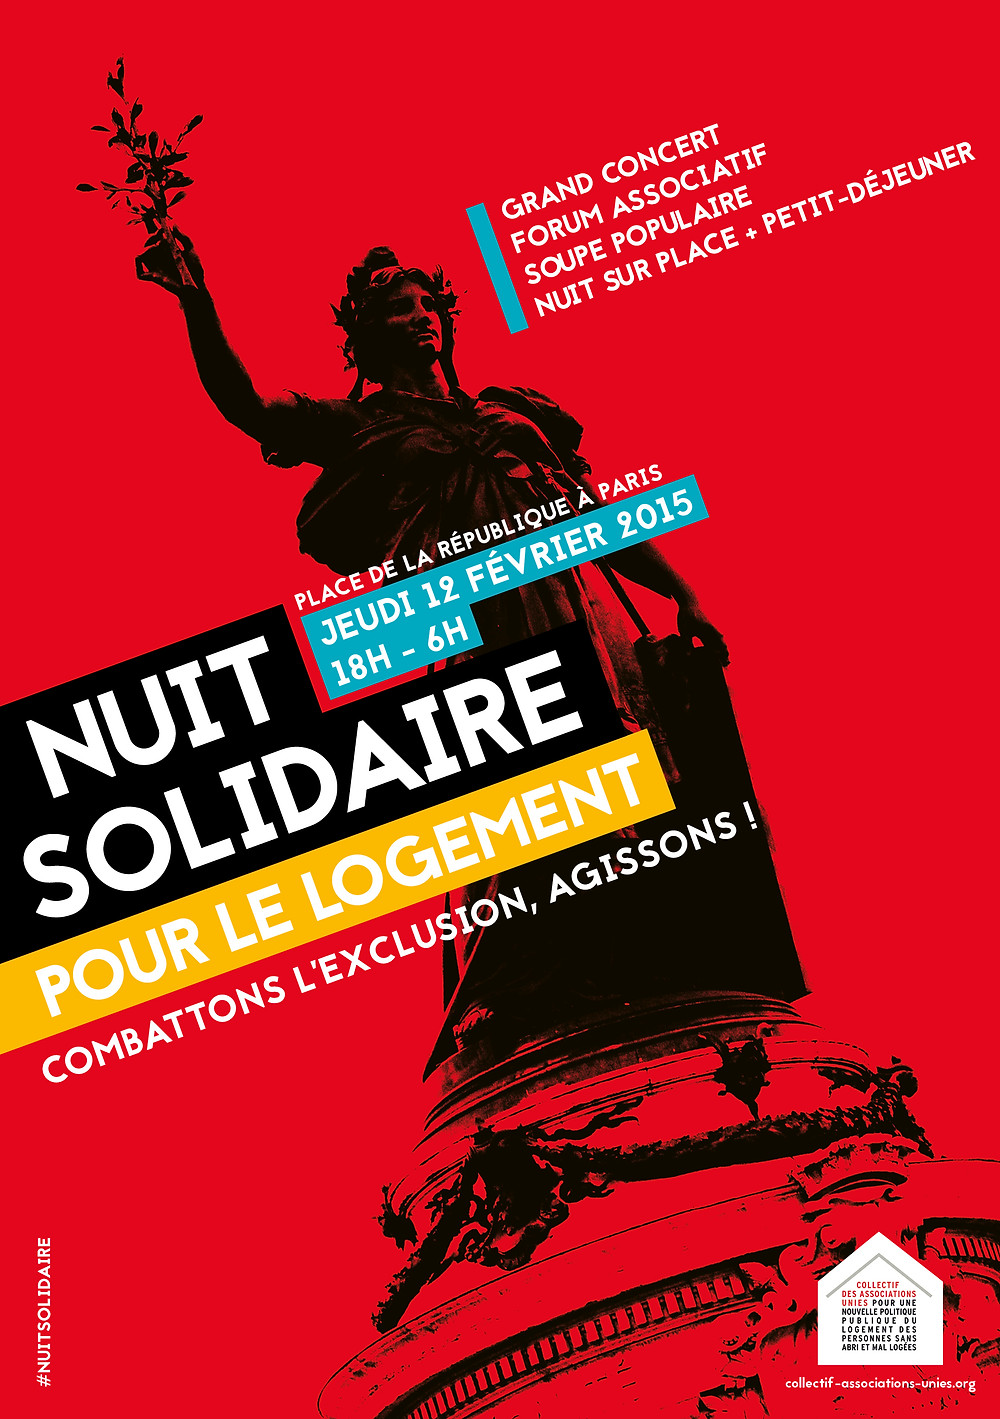 nuit-solidaire-affiche1.jpg